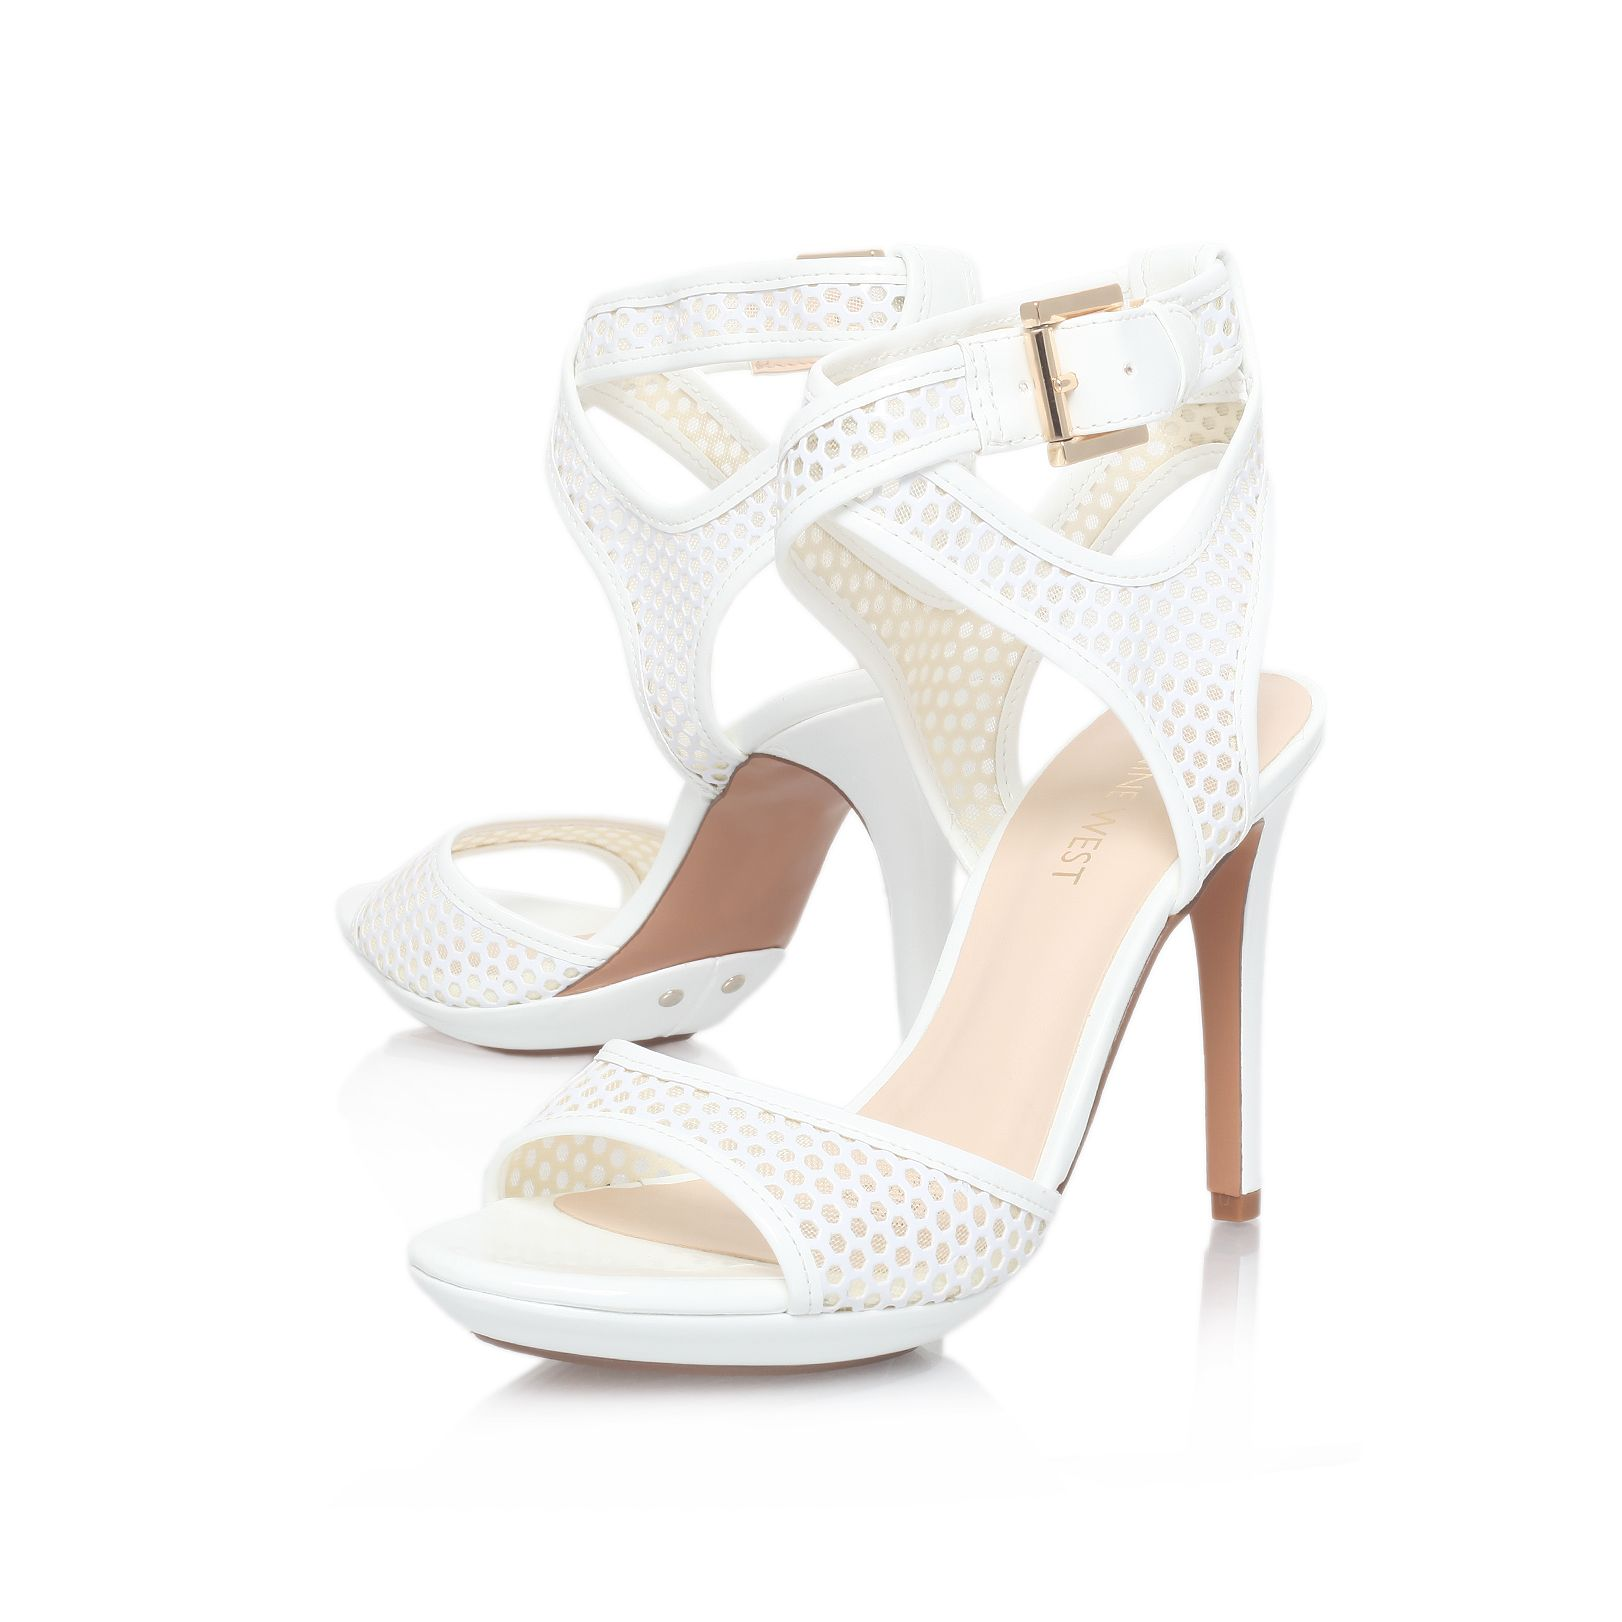 Halden3 high heel sandals